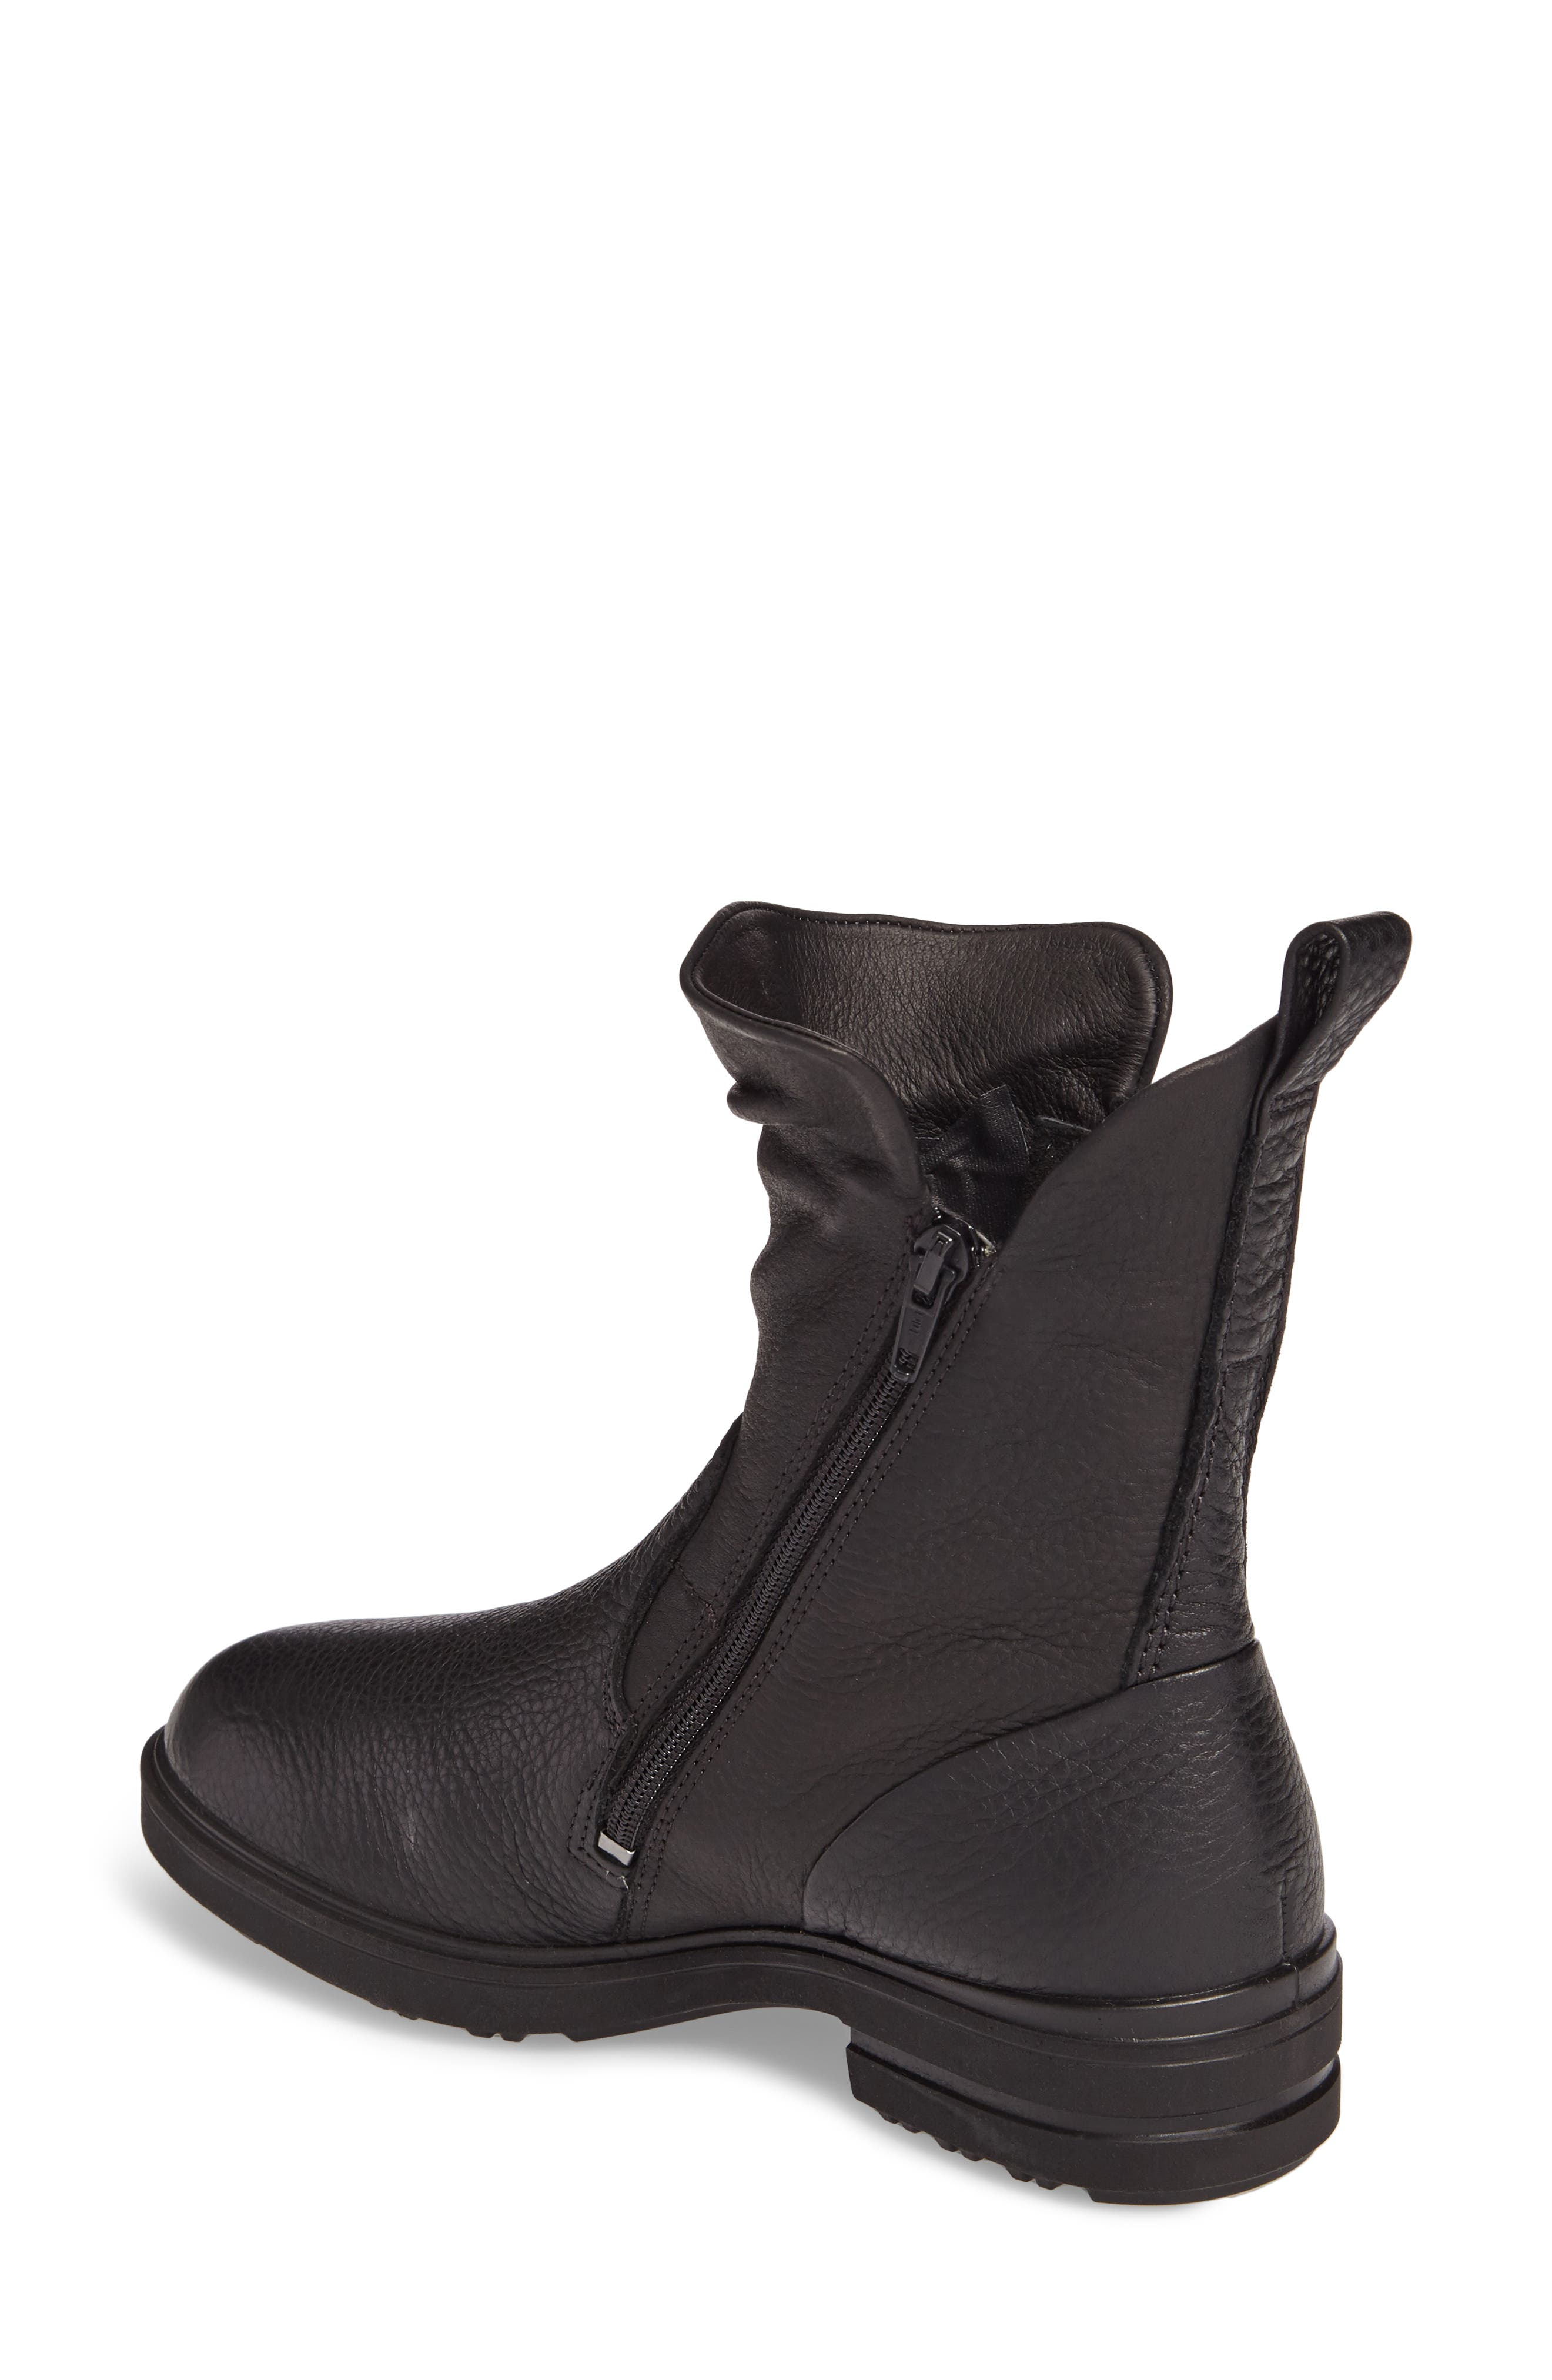 Zoe Mid Boot,                             Alternate thumbnail 2, color,                             Black Leather